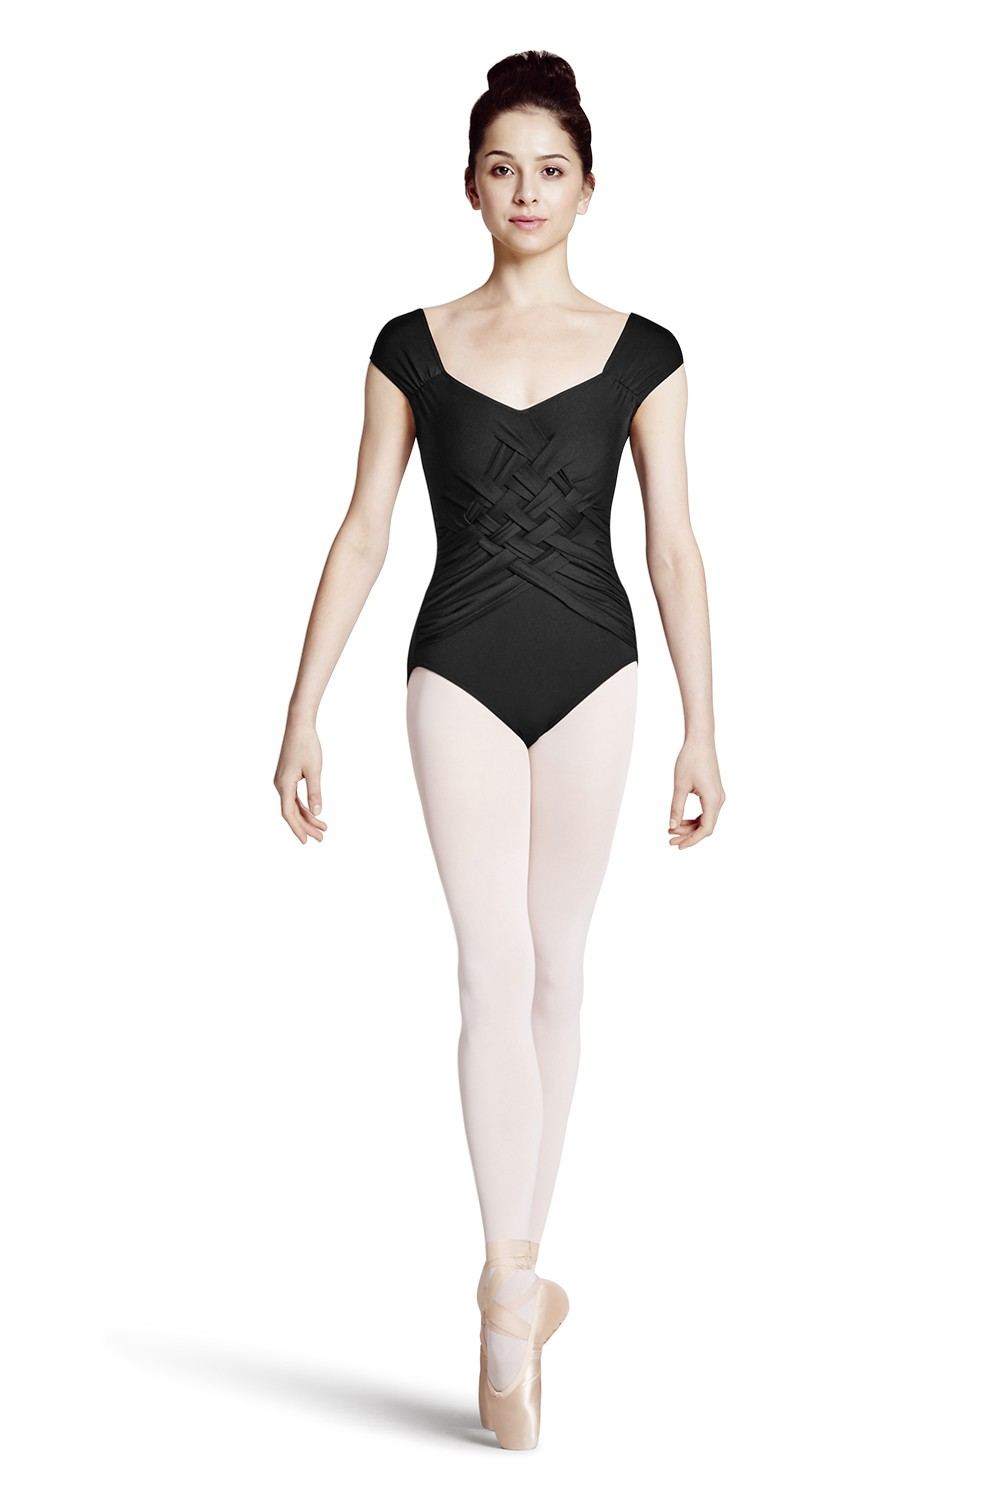 Body Con Maniche A Volant E Design A Intreccio Women's Dance Leotards